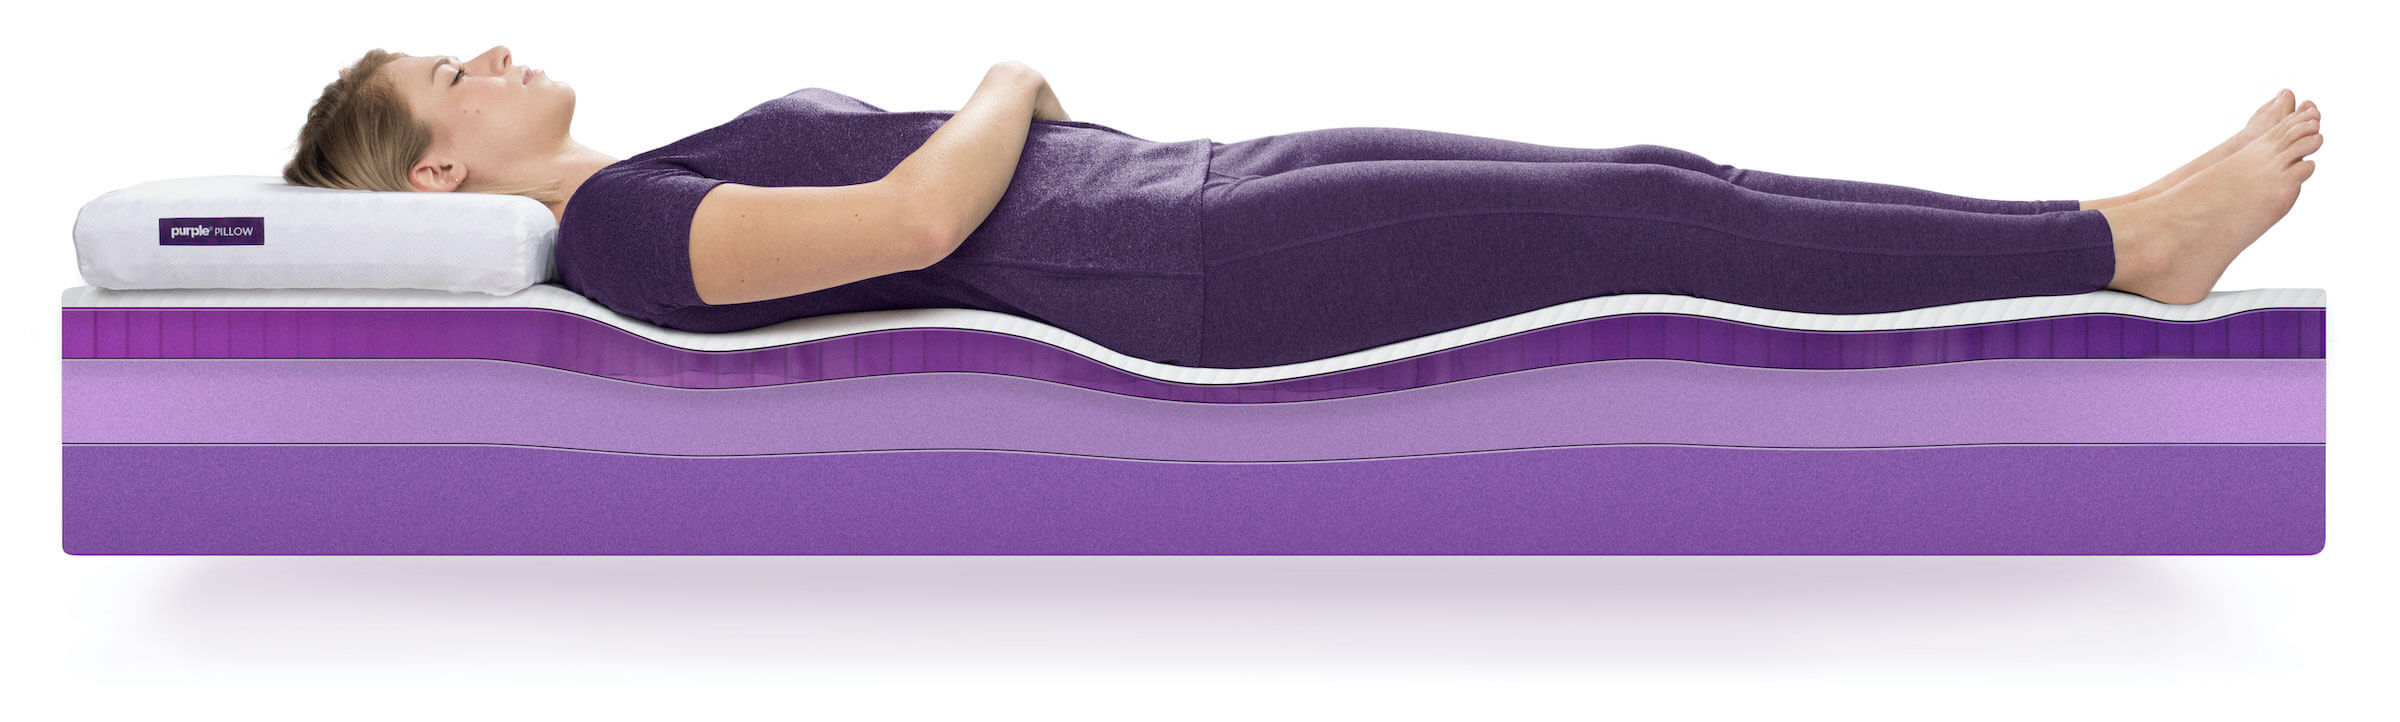 Sleeper Purple Mattress